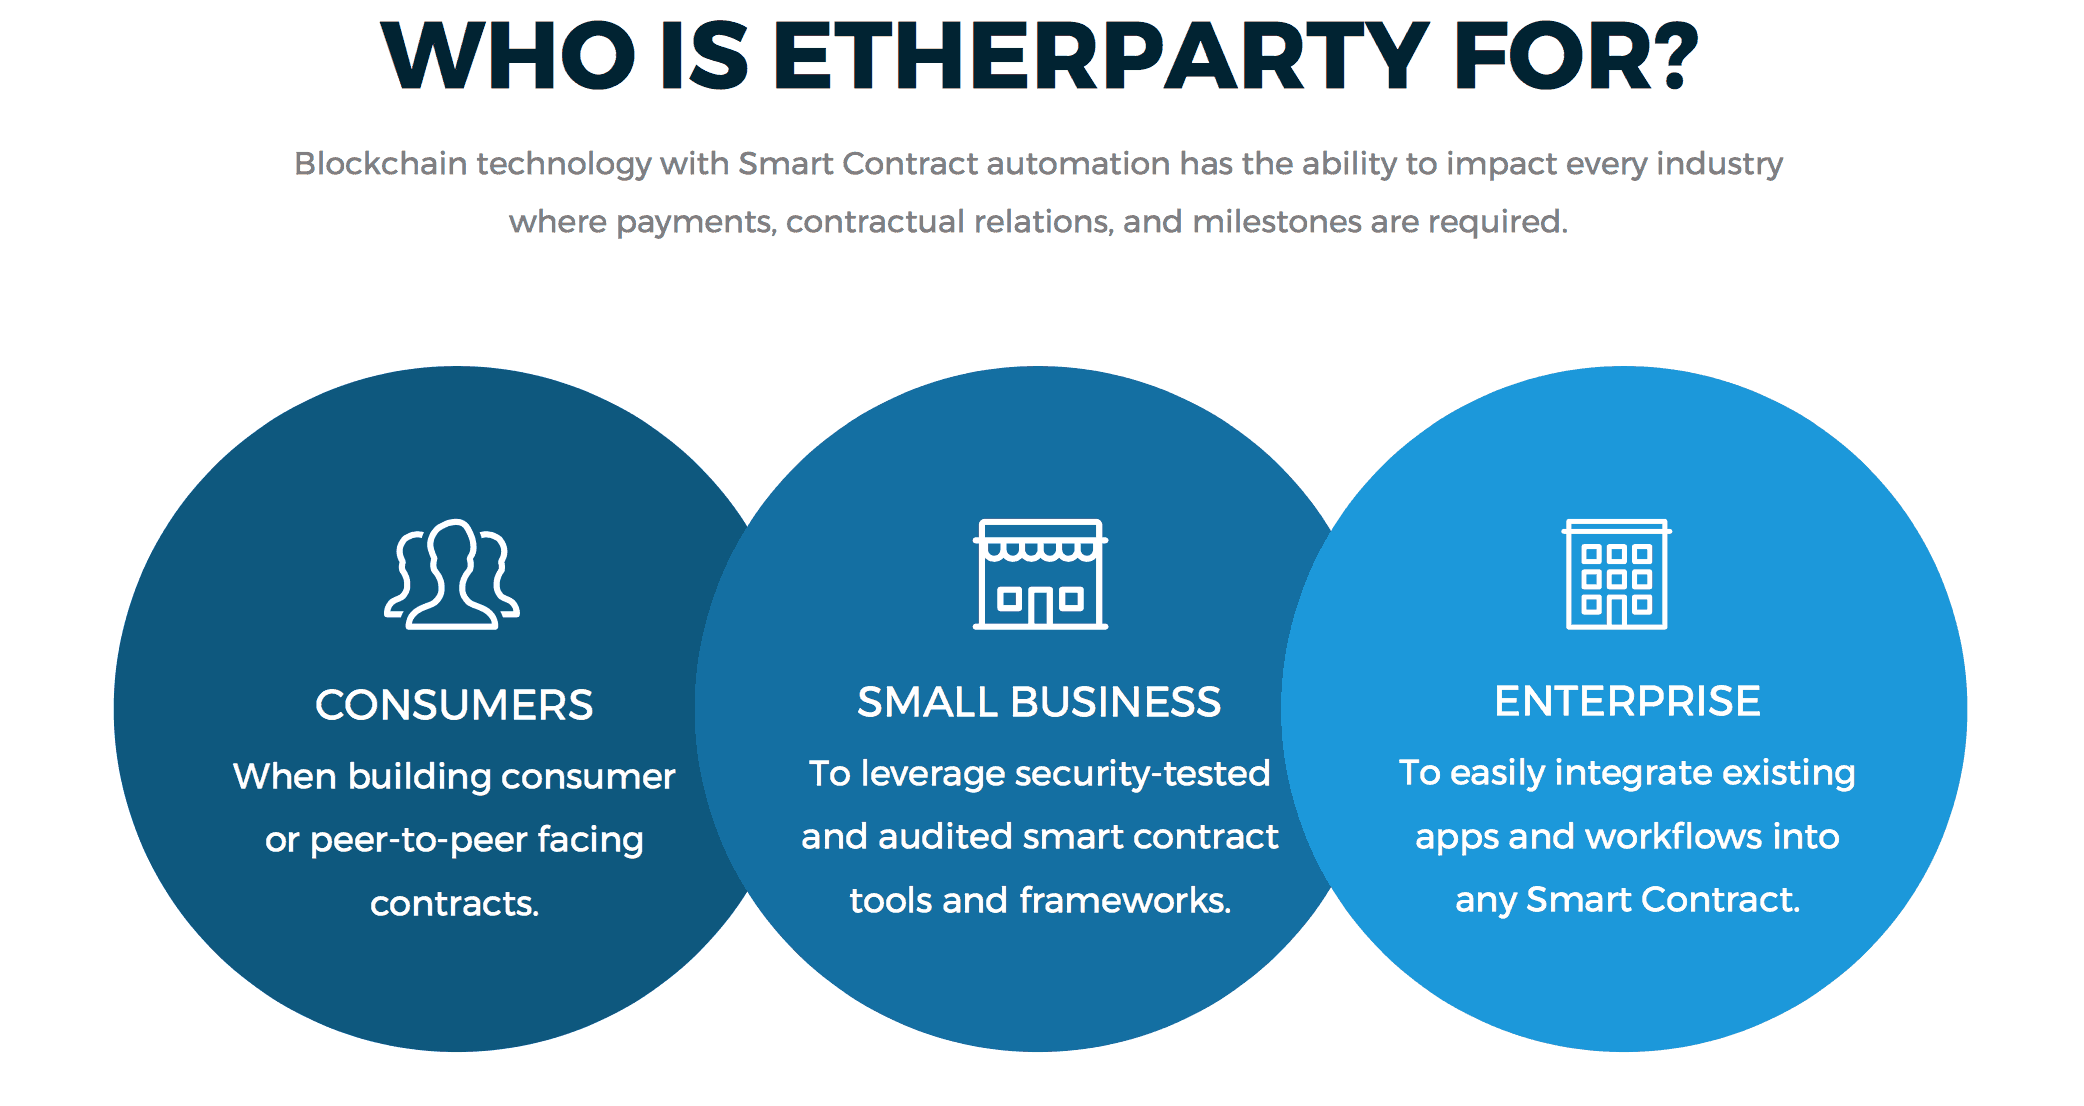 who is Etherparty for?